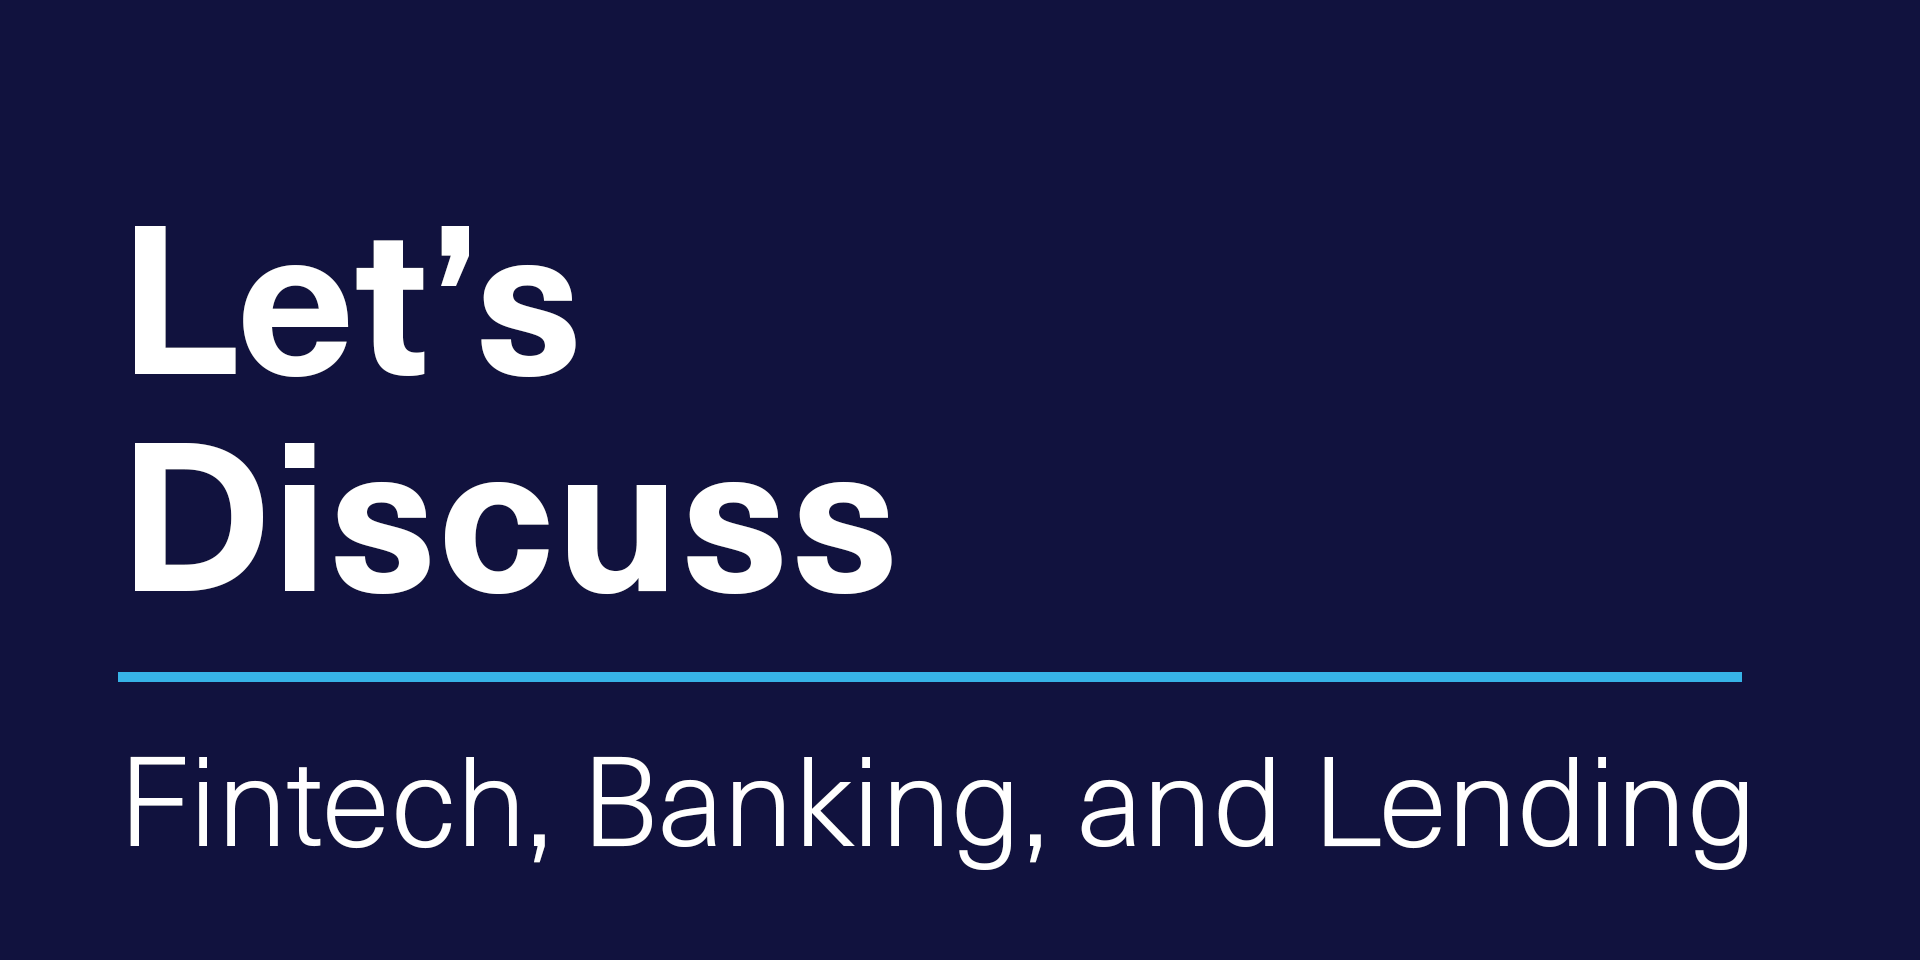 [VIRTUAL] Let's Discuss | Fintech, Banking, and Lending